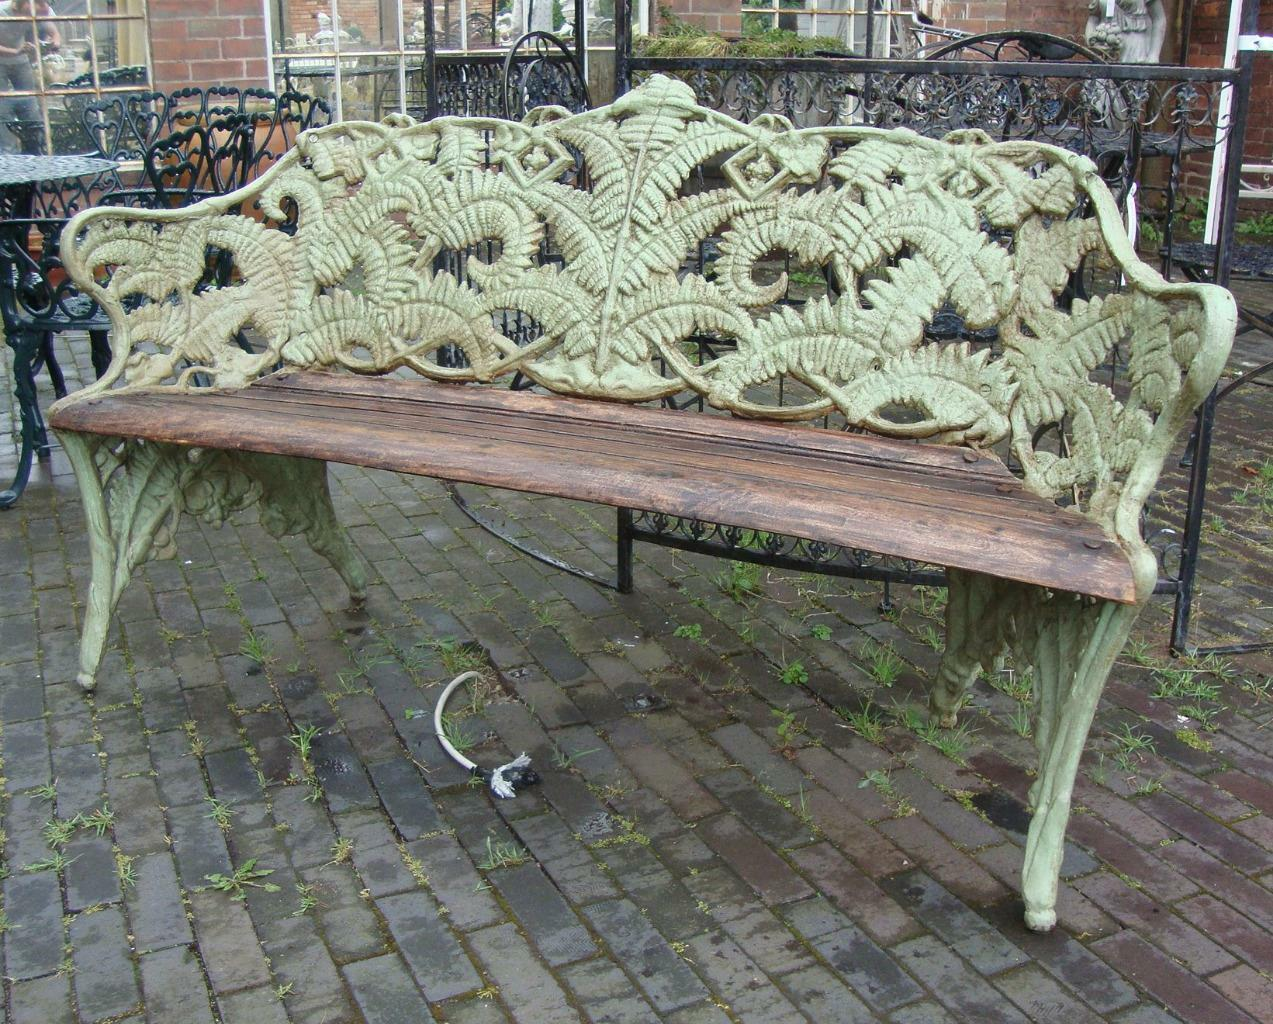 Fern Coalbrookdale Style Cast Iron Garden Two Seat Bench with Wooden Seat